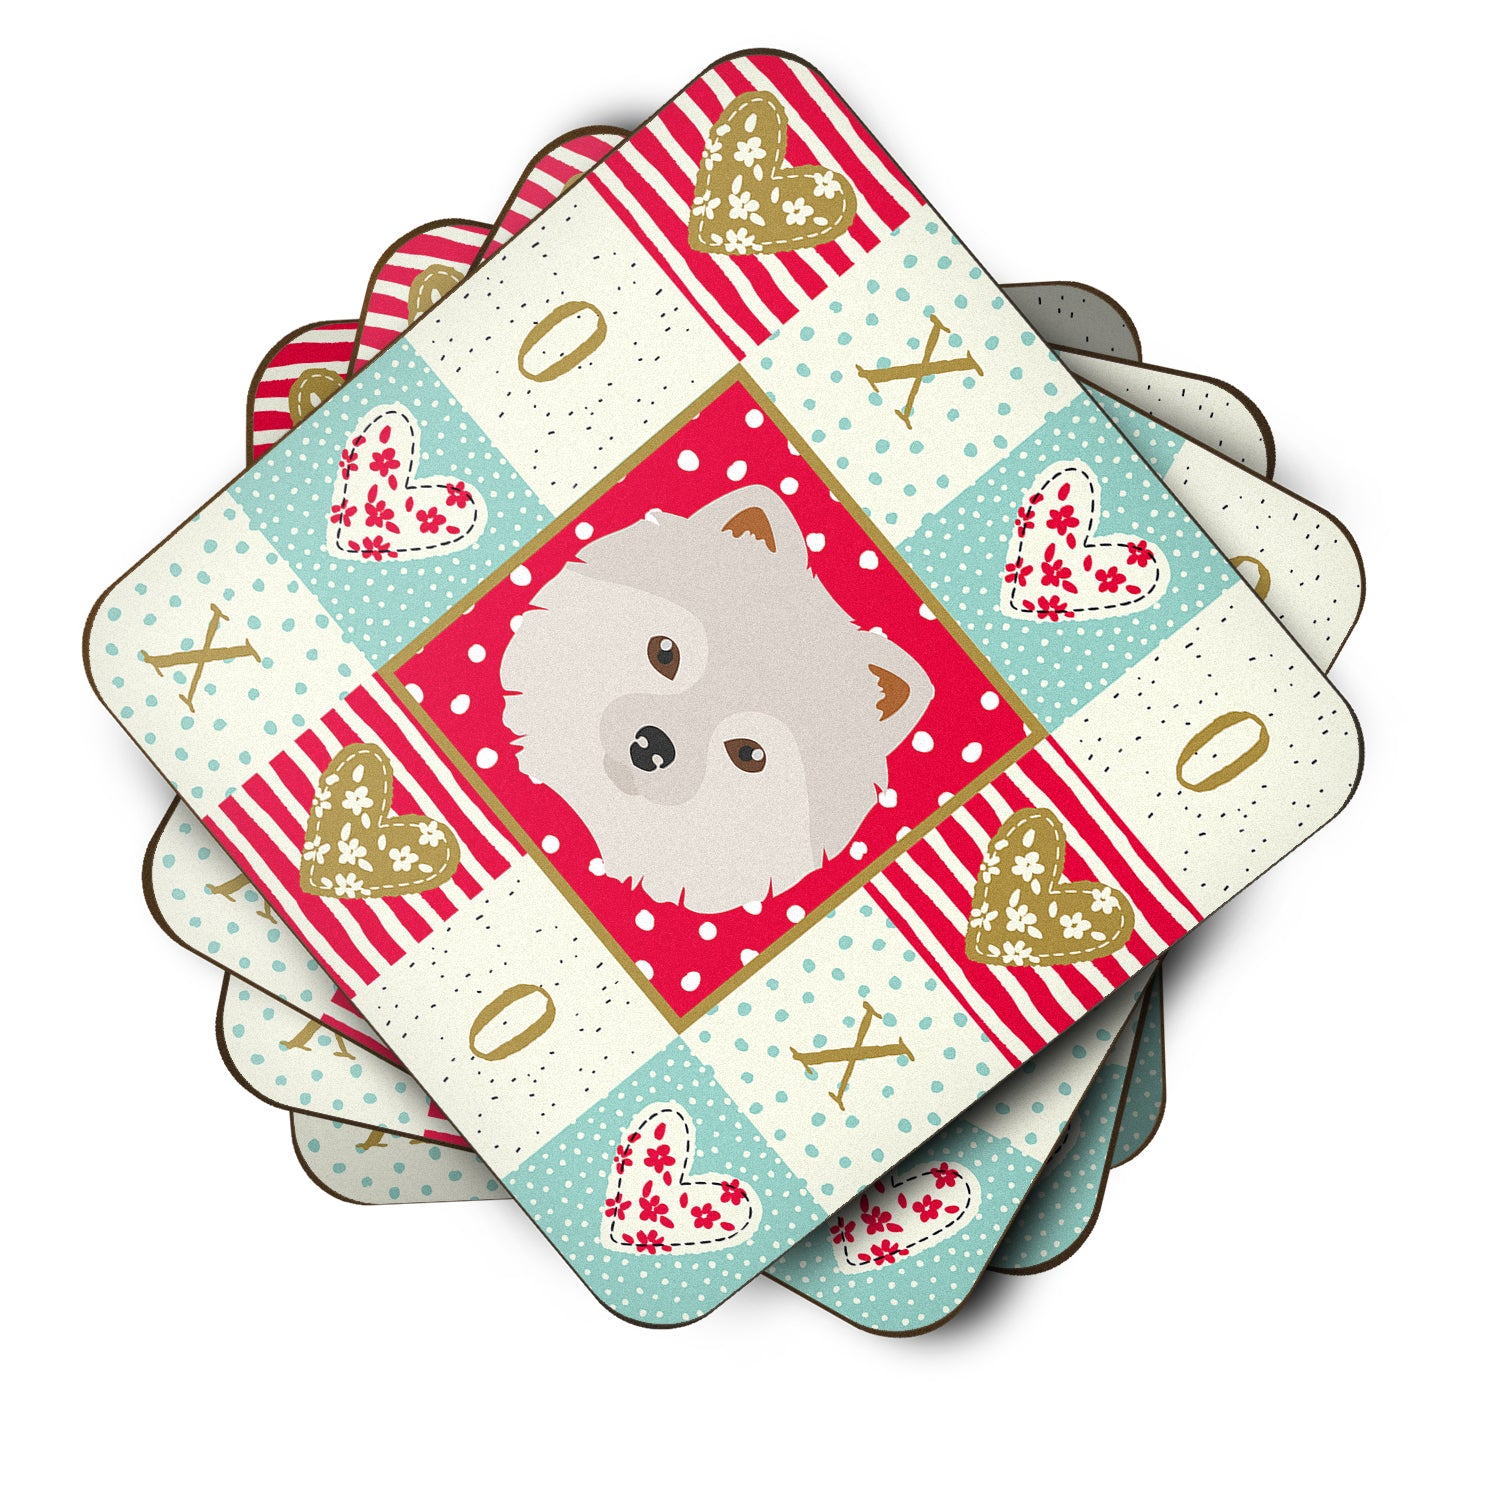 Set of 4 Japanese Spitz Love Foam Coasters Set of 4 CK5210FC by Caroline's Treasures